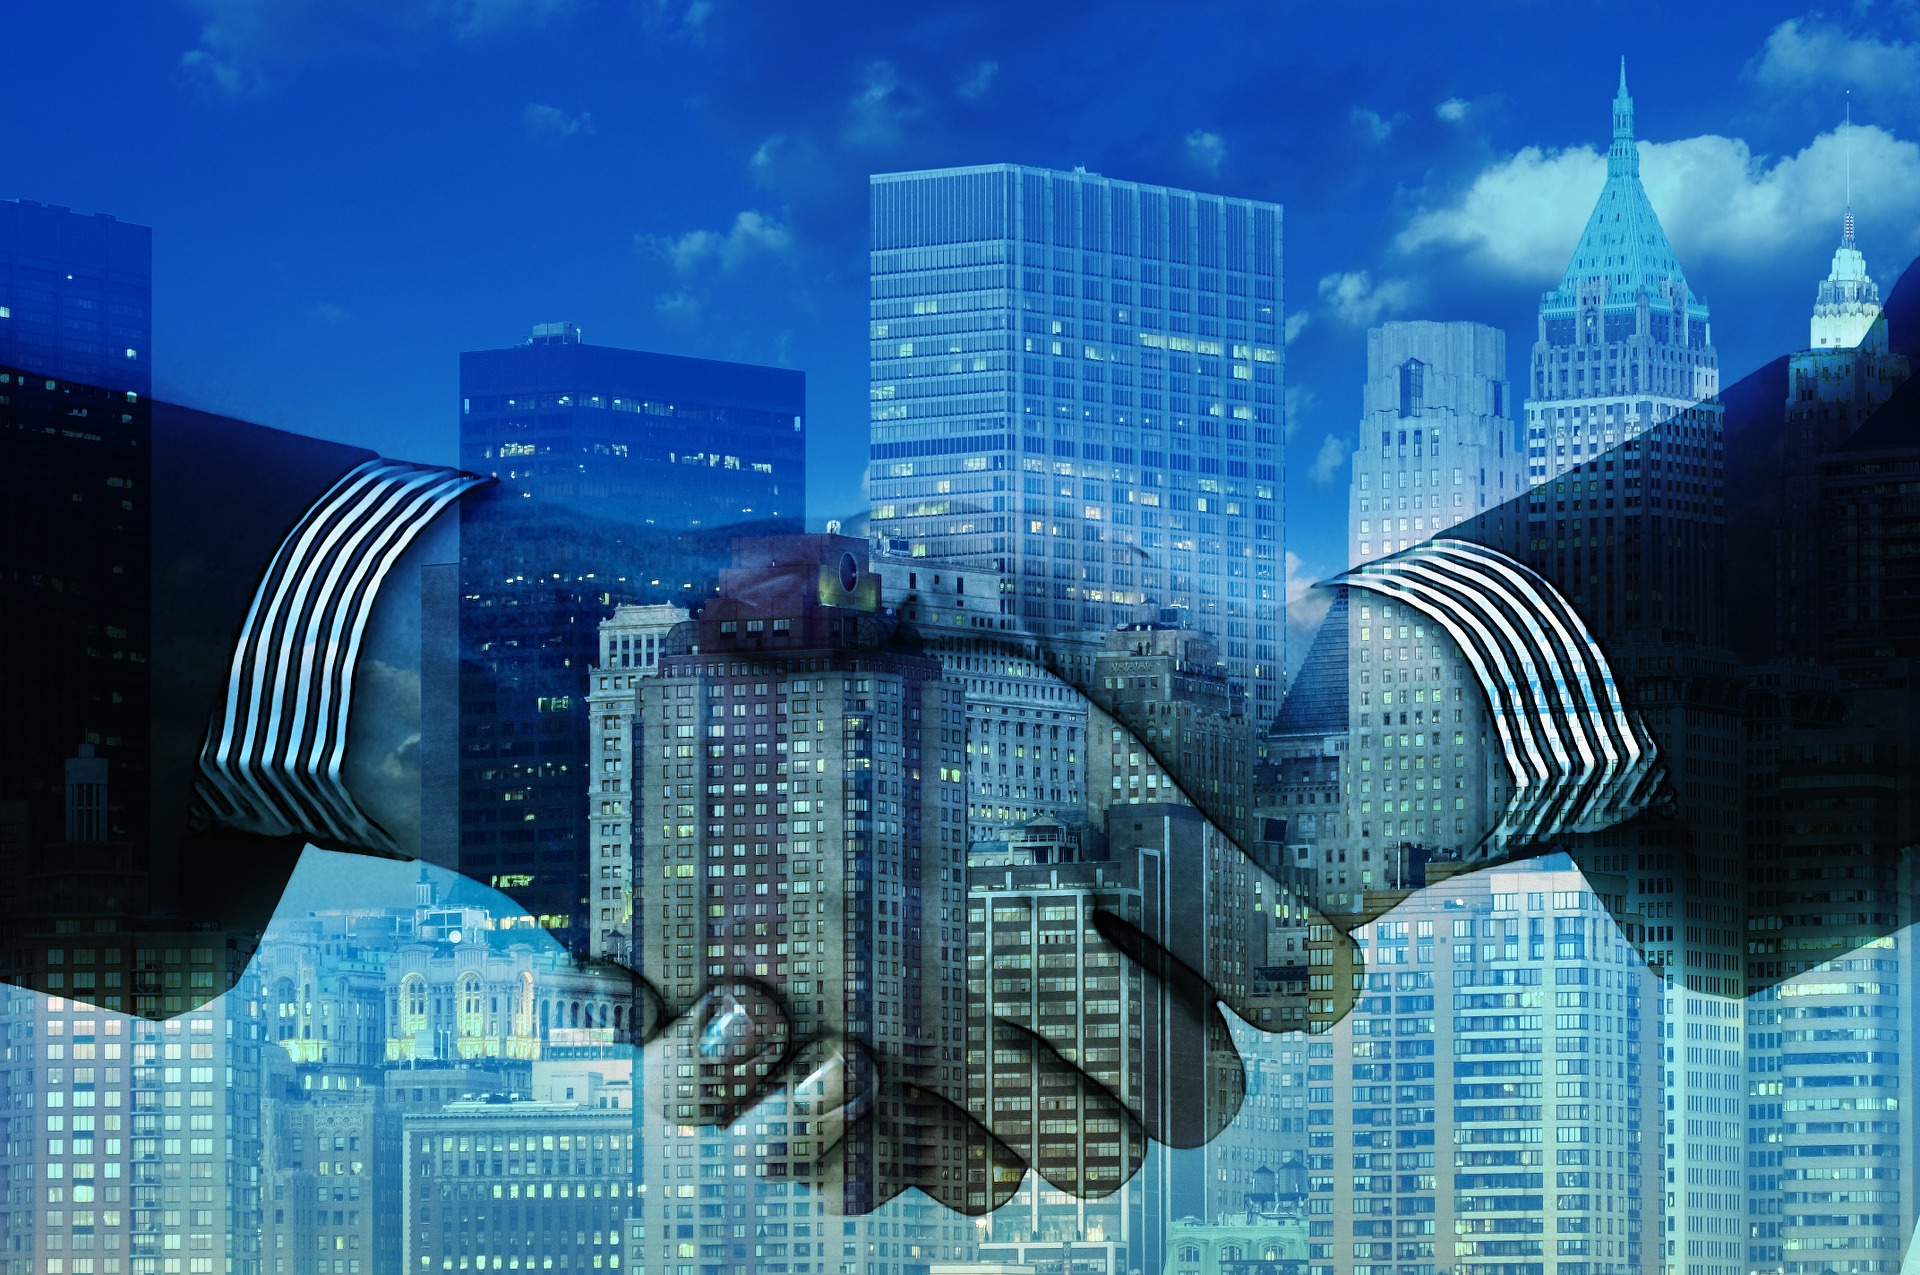 Merger & Acquisition: Human Resource Due Diligence